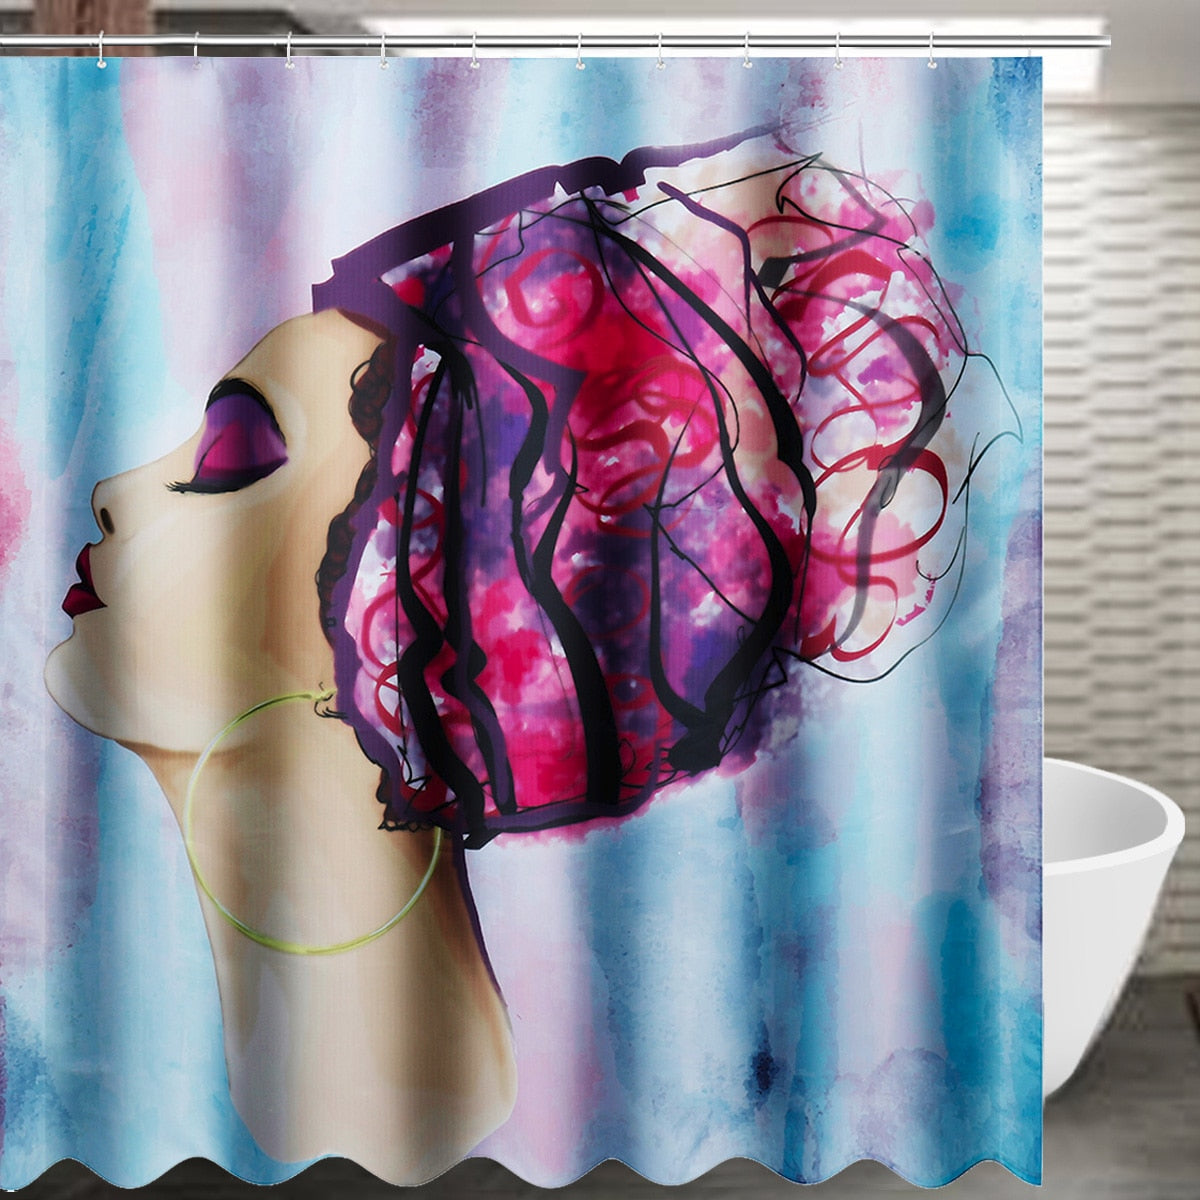 Waterproof Bathroom Curtains African Woman Shower Curtain Polyester Fabric Home 12 C Shaped